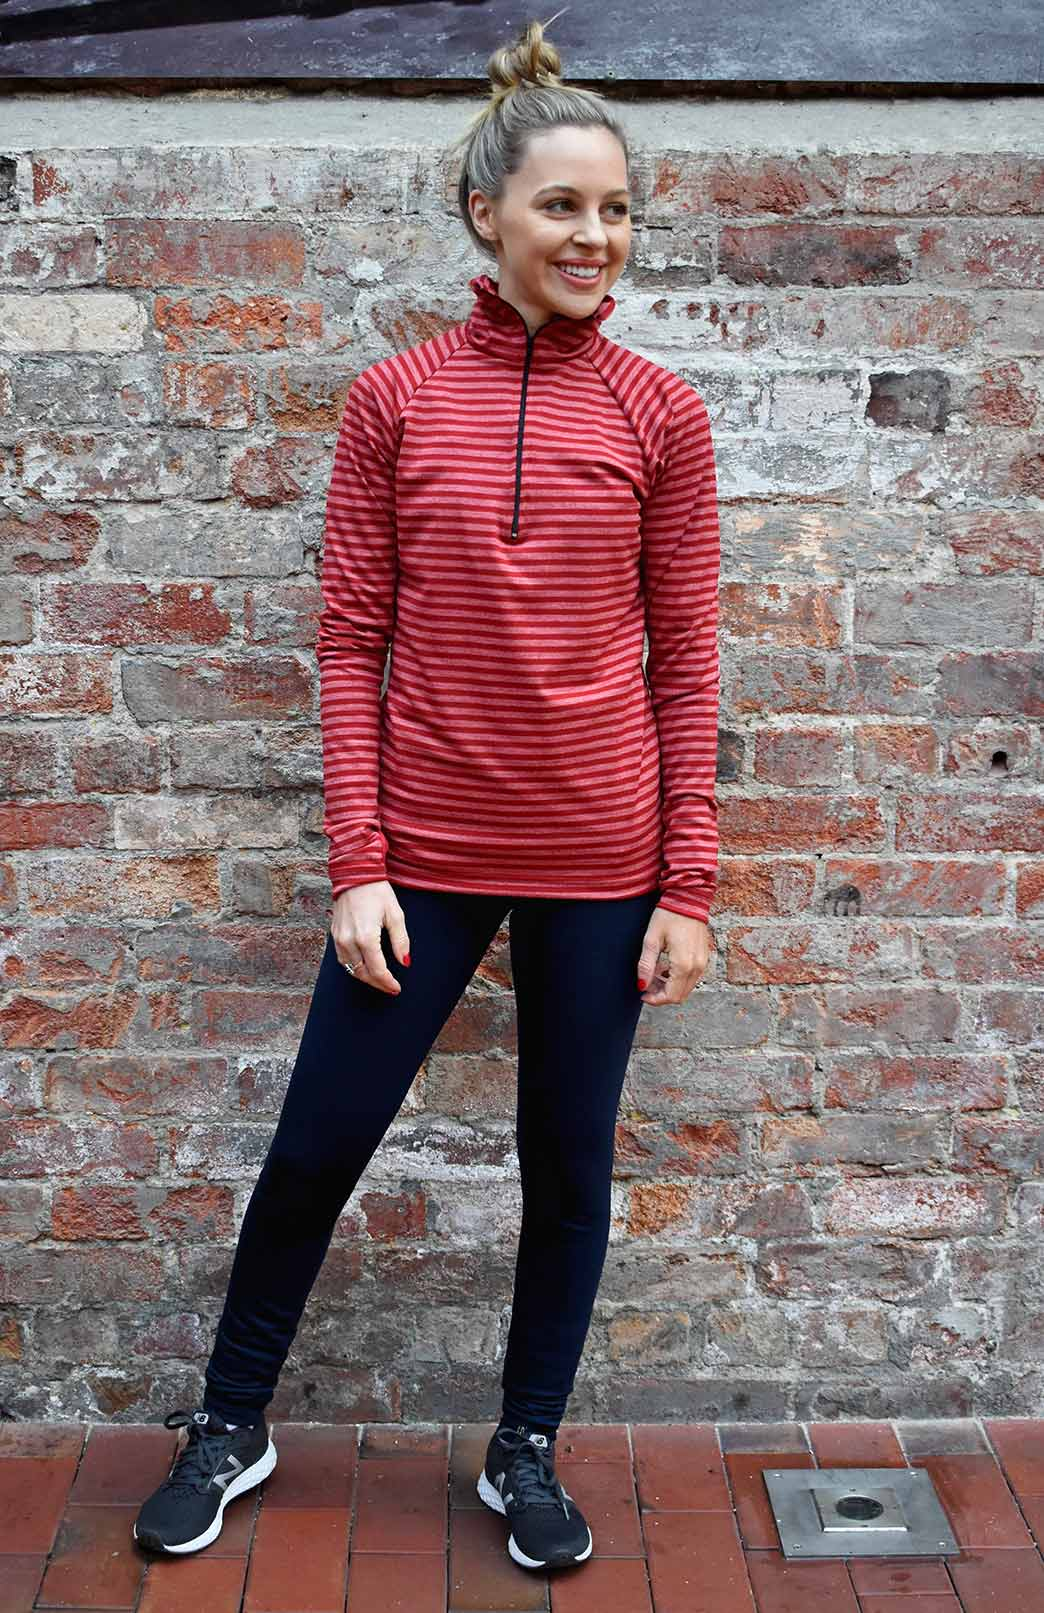 Zip Neck Top - Midweight (220g) - Women's Flame Striped Wool Zip Neck Pullover Top with collar - Smitten Merino Tasmania Australia